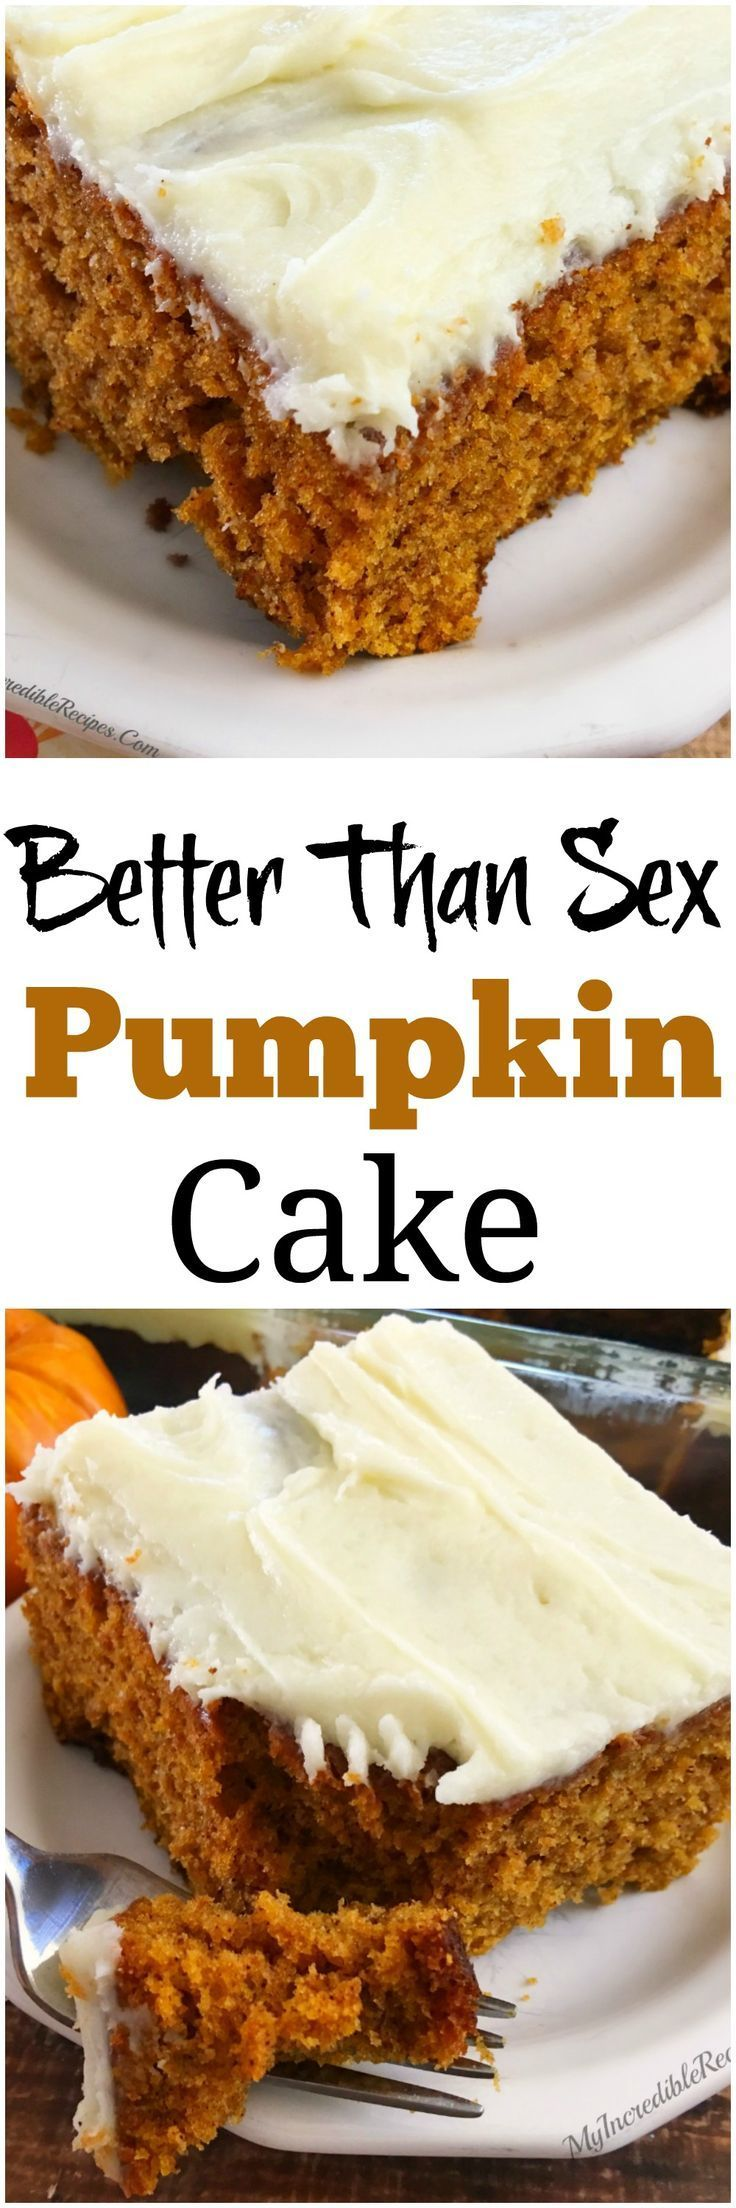 Better than Sex PUMPKIN Cake!                                                                                                                                                                                 More